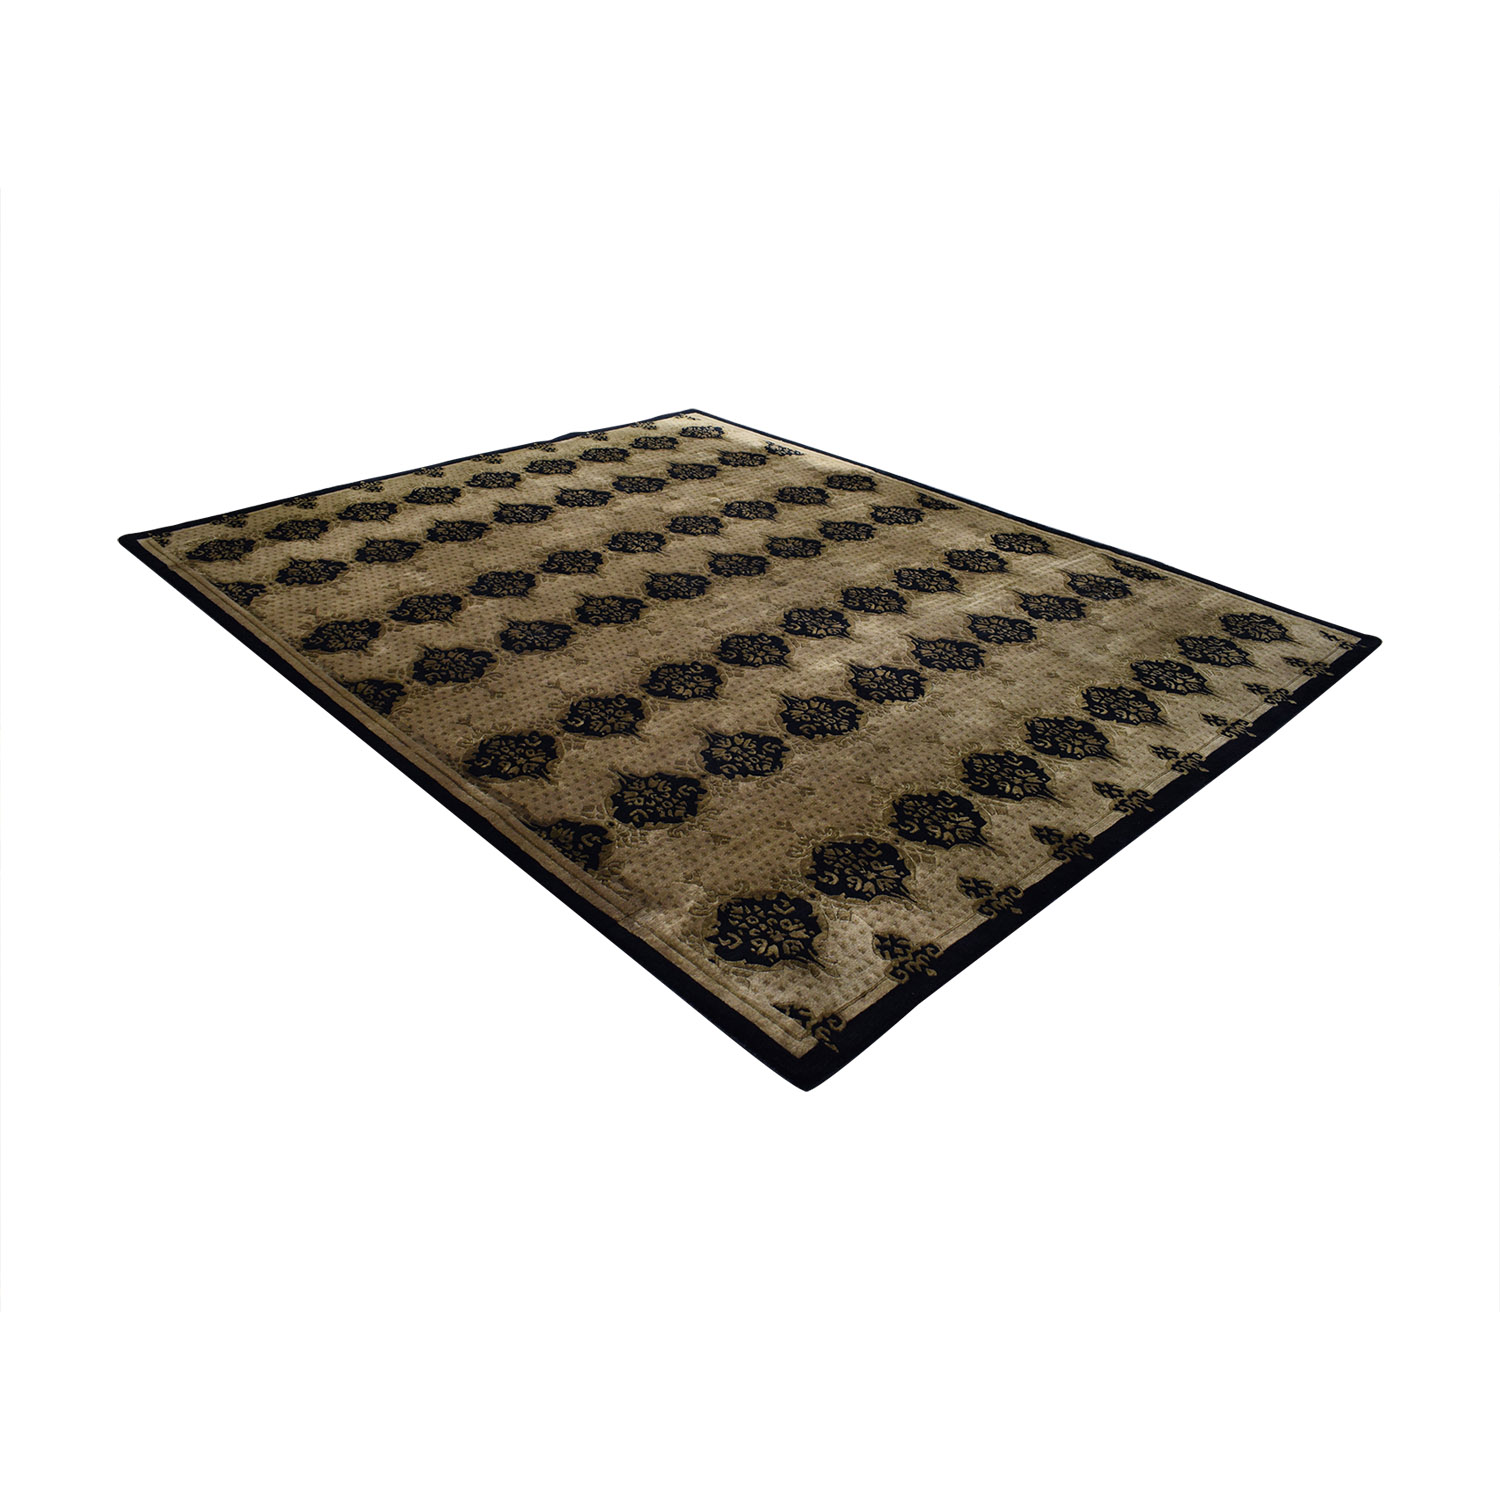 shop ABC Carpet & Home ABC Carpet & Home  Wool Rug online